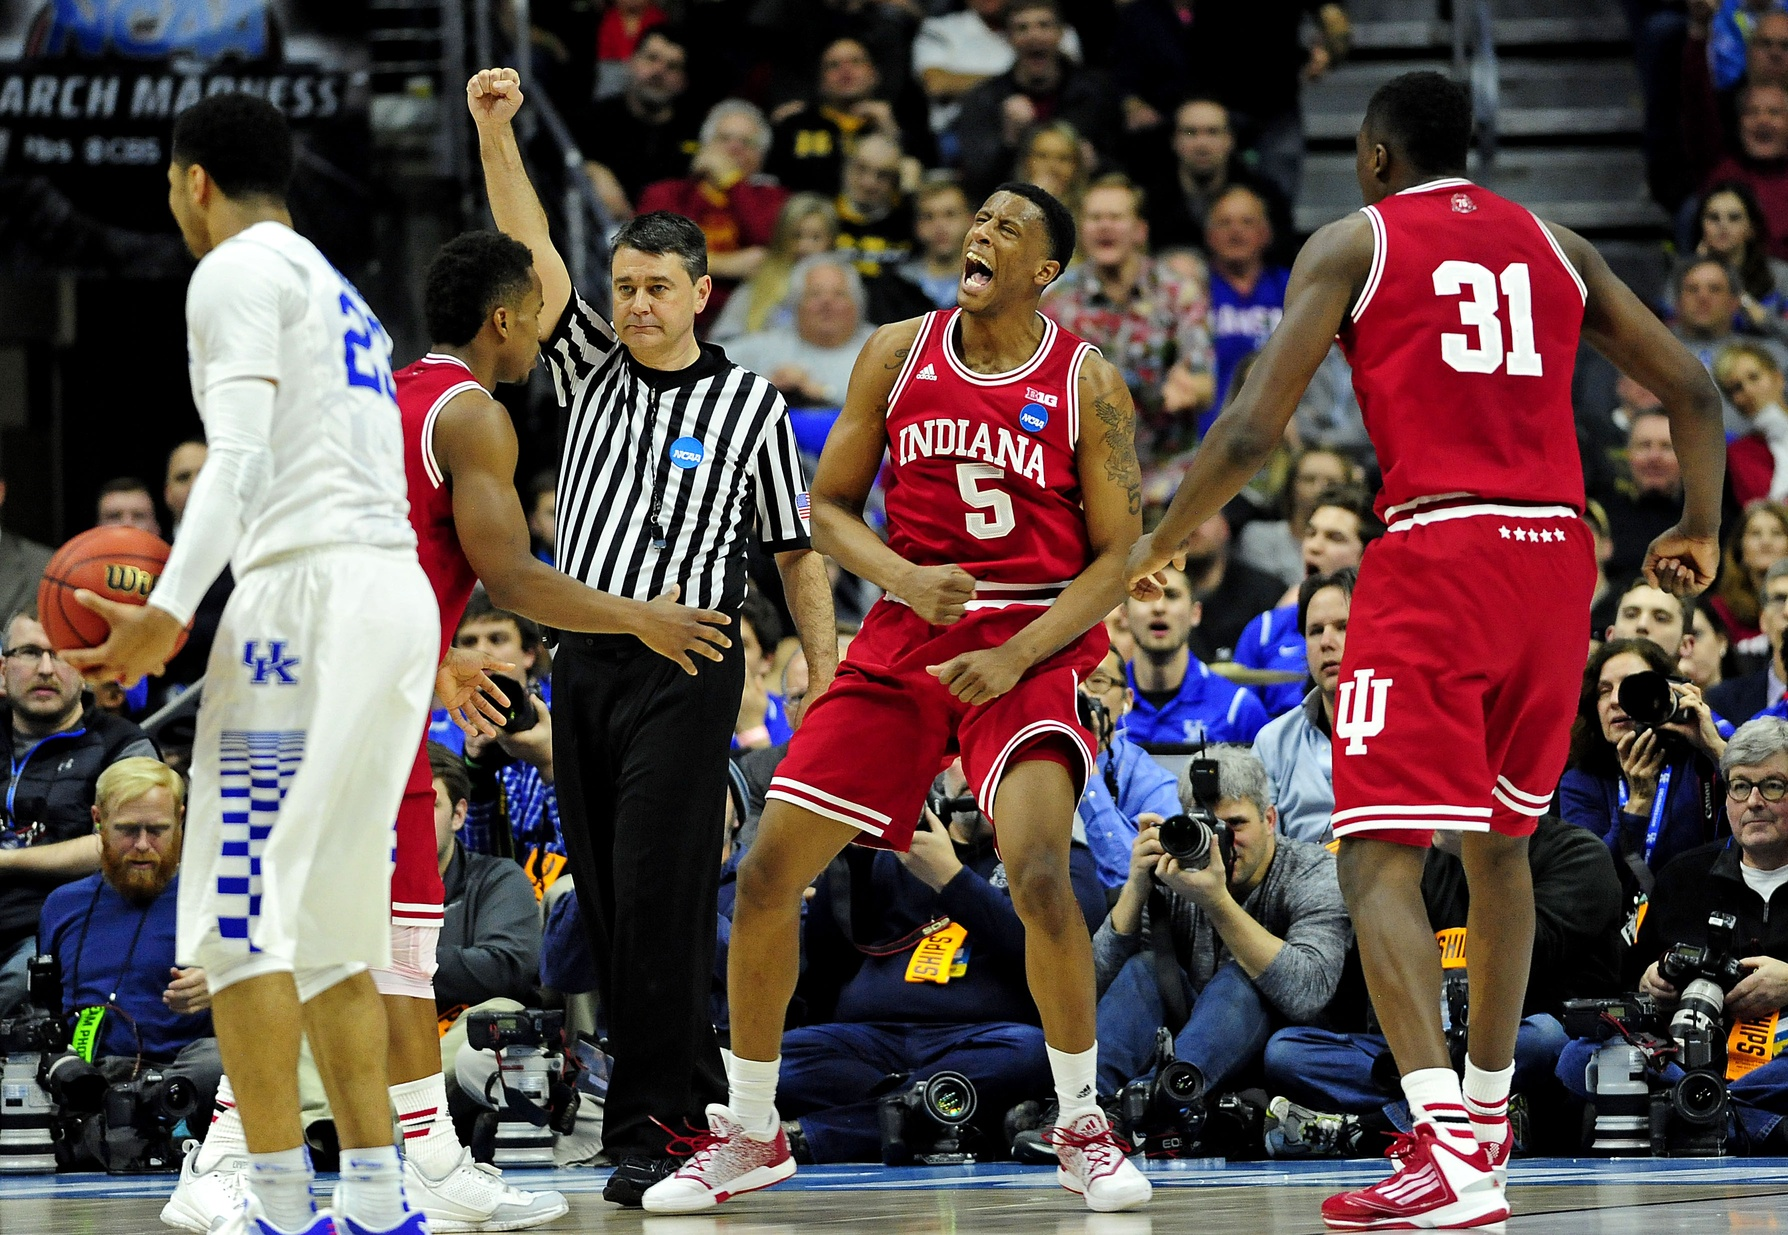 IU beats Kentucky